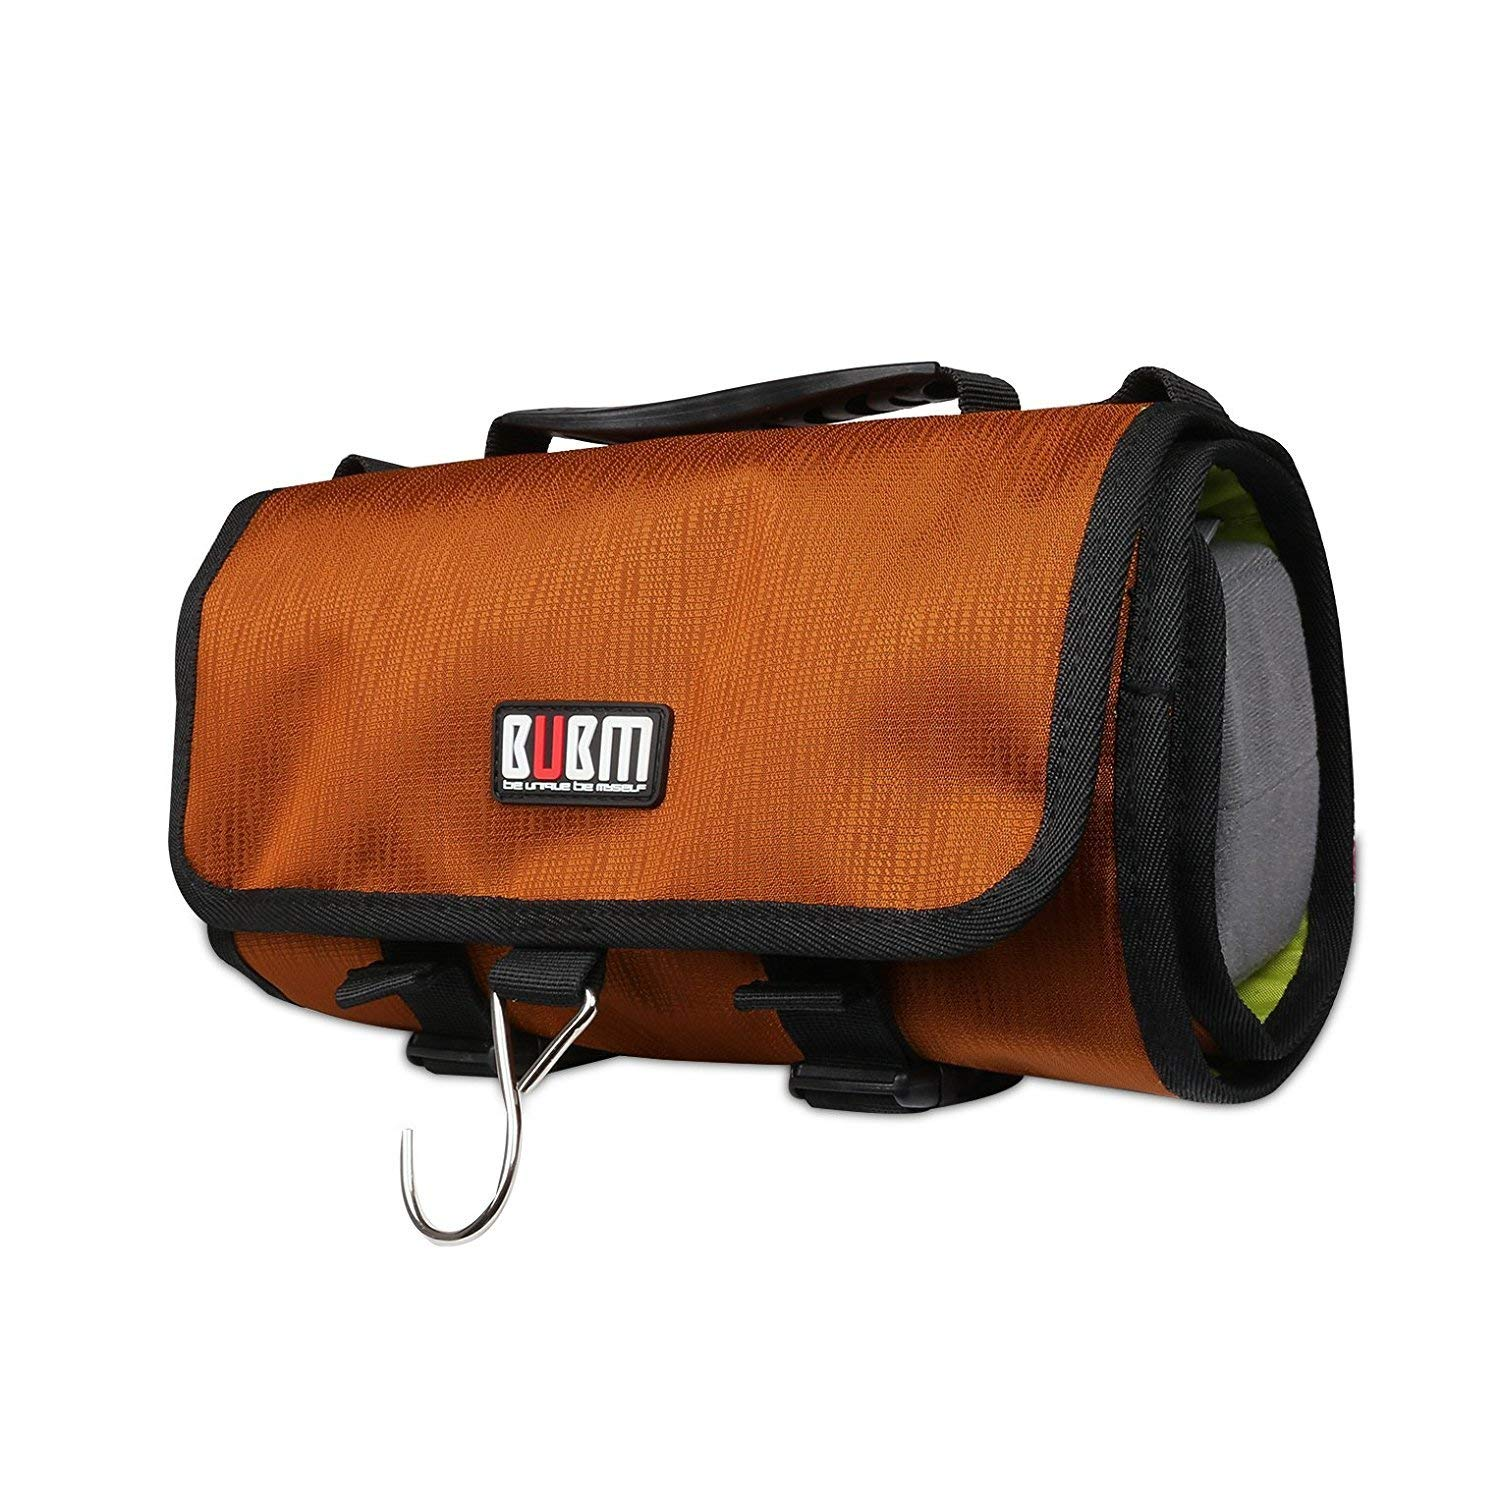 BUBM Large Canvas Travel Roll Bag, Action Camera Rollup Protective Case Shoulder Bag (Gold) for GoPro Hero6/5/4/3+/3, SJ7 STAR SJ5000/SJ4000, Sports Camera Accessories